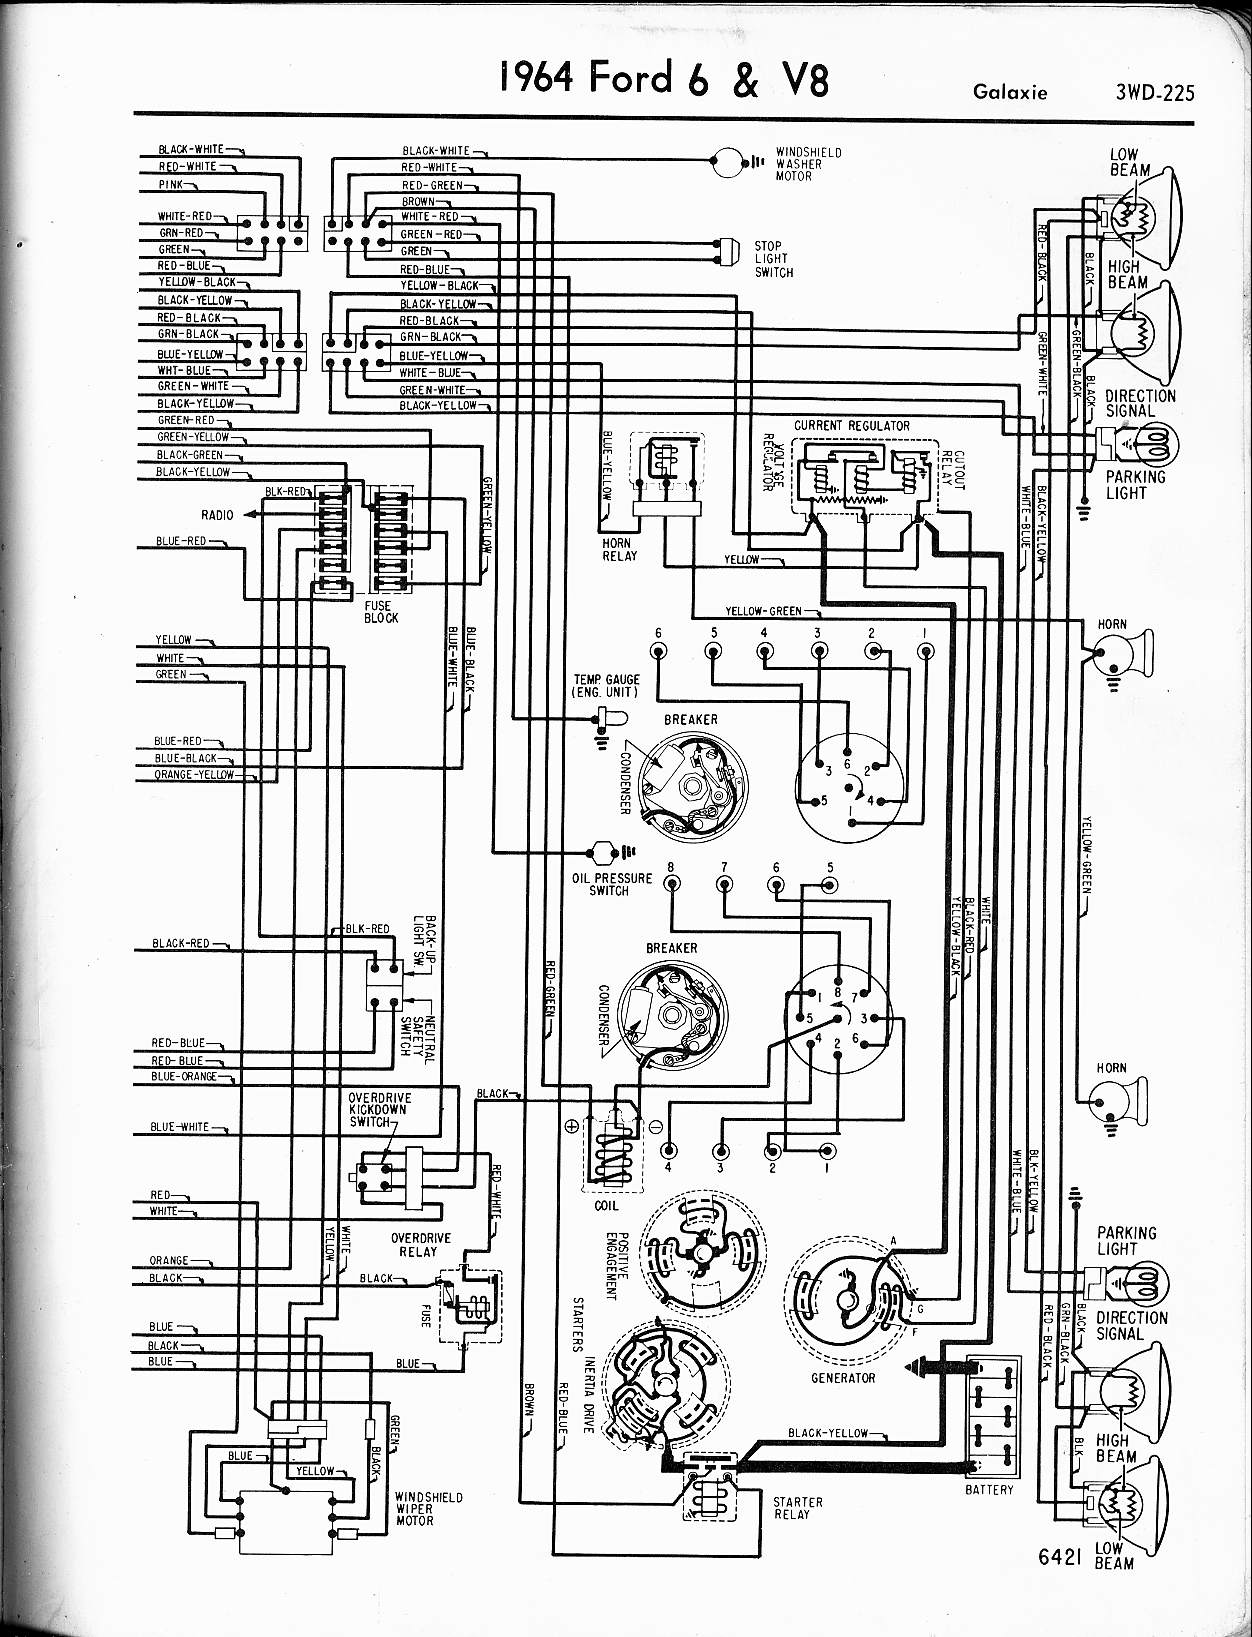 63 Ford Falcon Ignition Switch Wiring Diagram on 1967 ford thunderbird turn signal switch wiring diagram